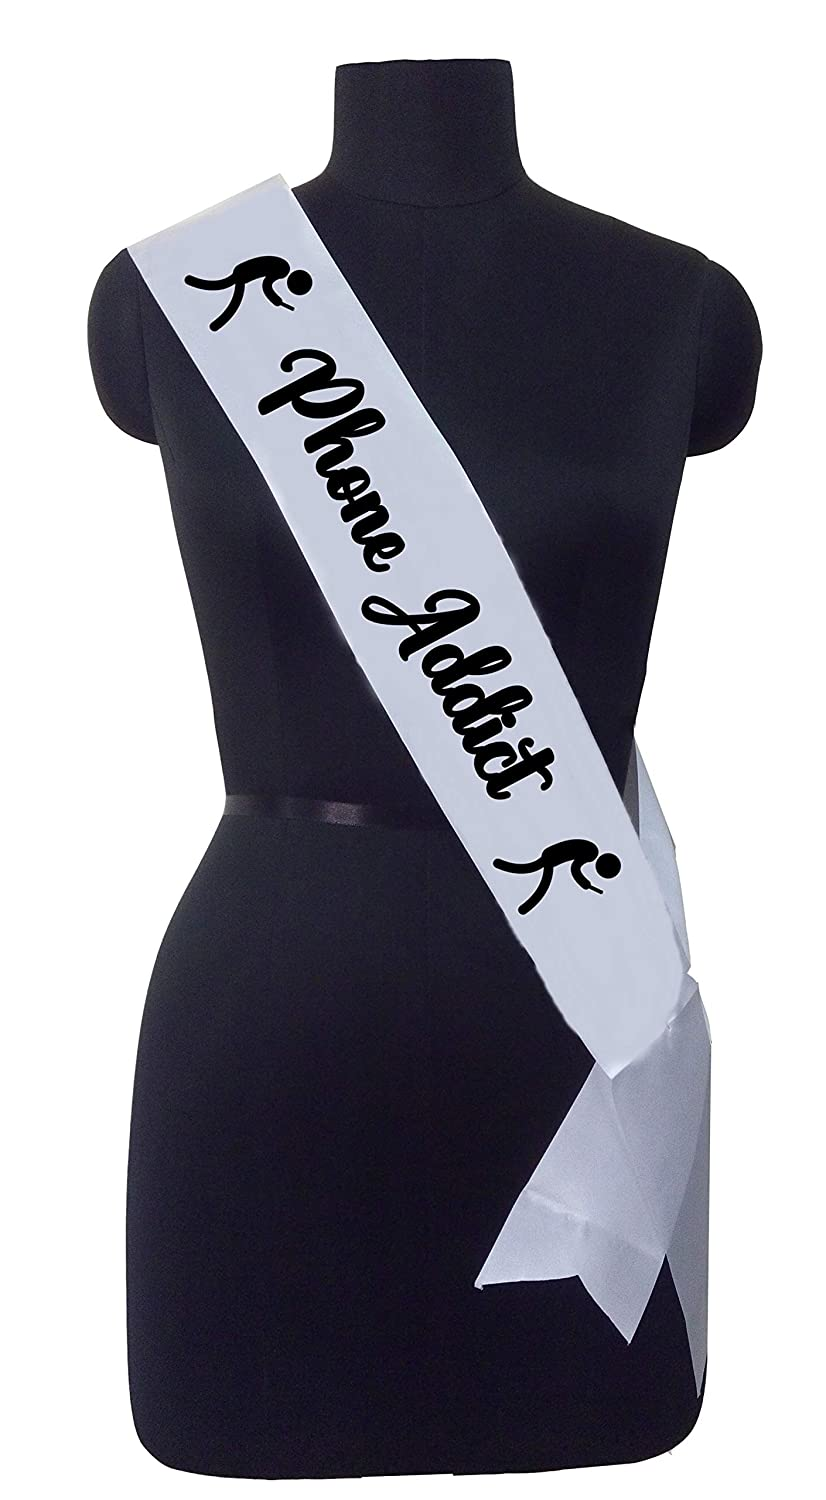 Phone Addict Sash for The Ones who are Always Busy with Their Phone